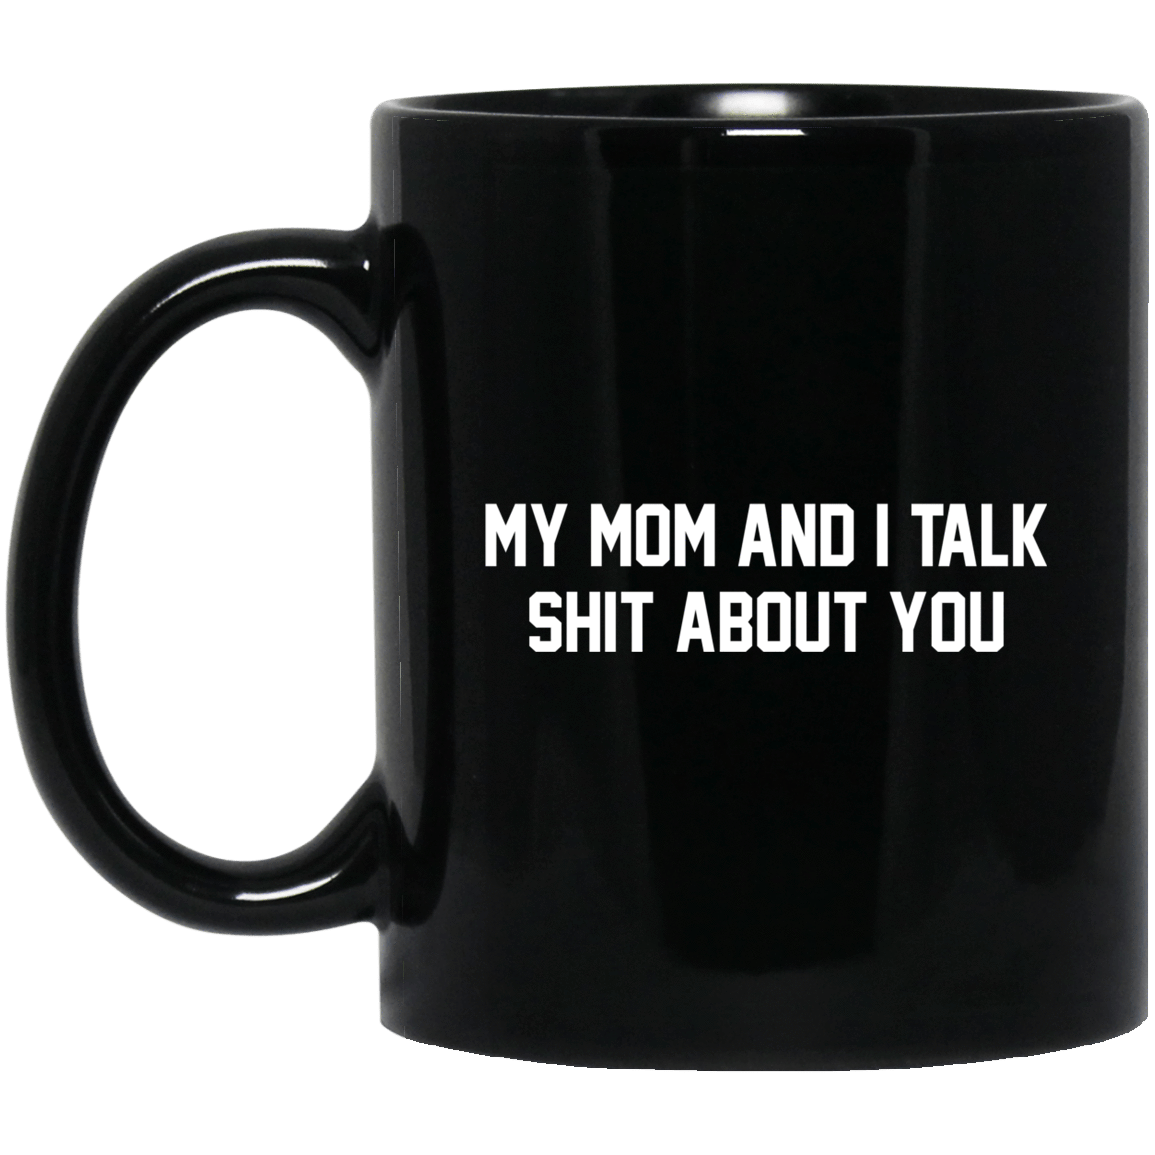 My Mom And I Talk Shit About You Mug 1065-10181-72519626-49307 - Tee Ript